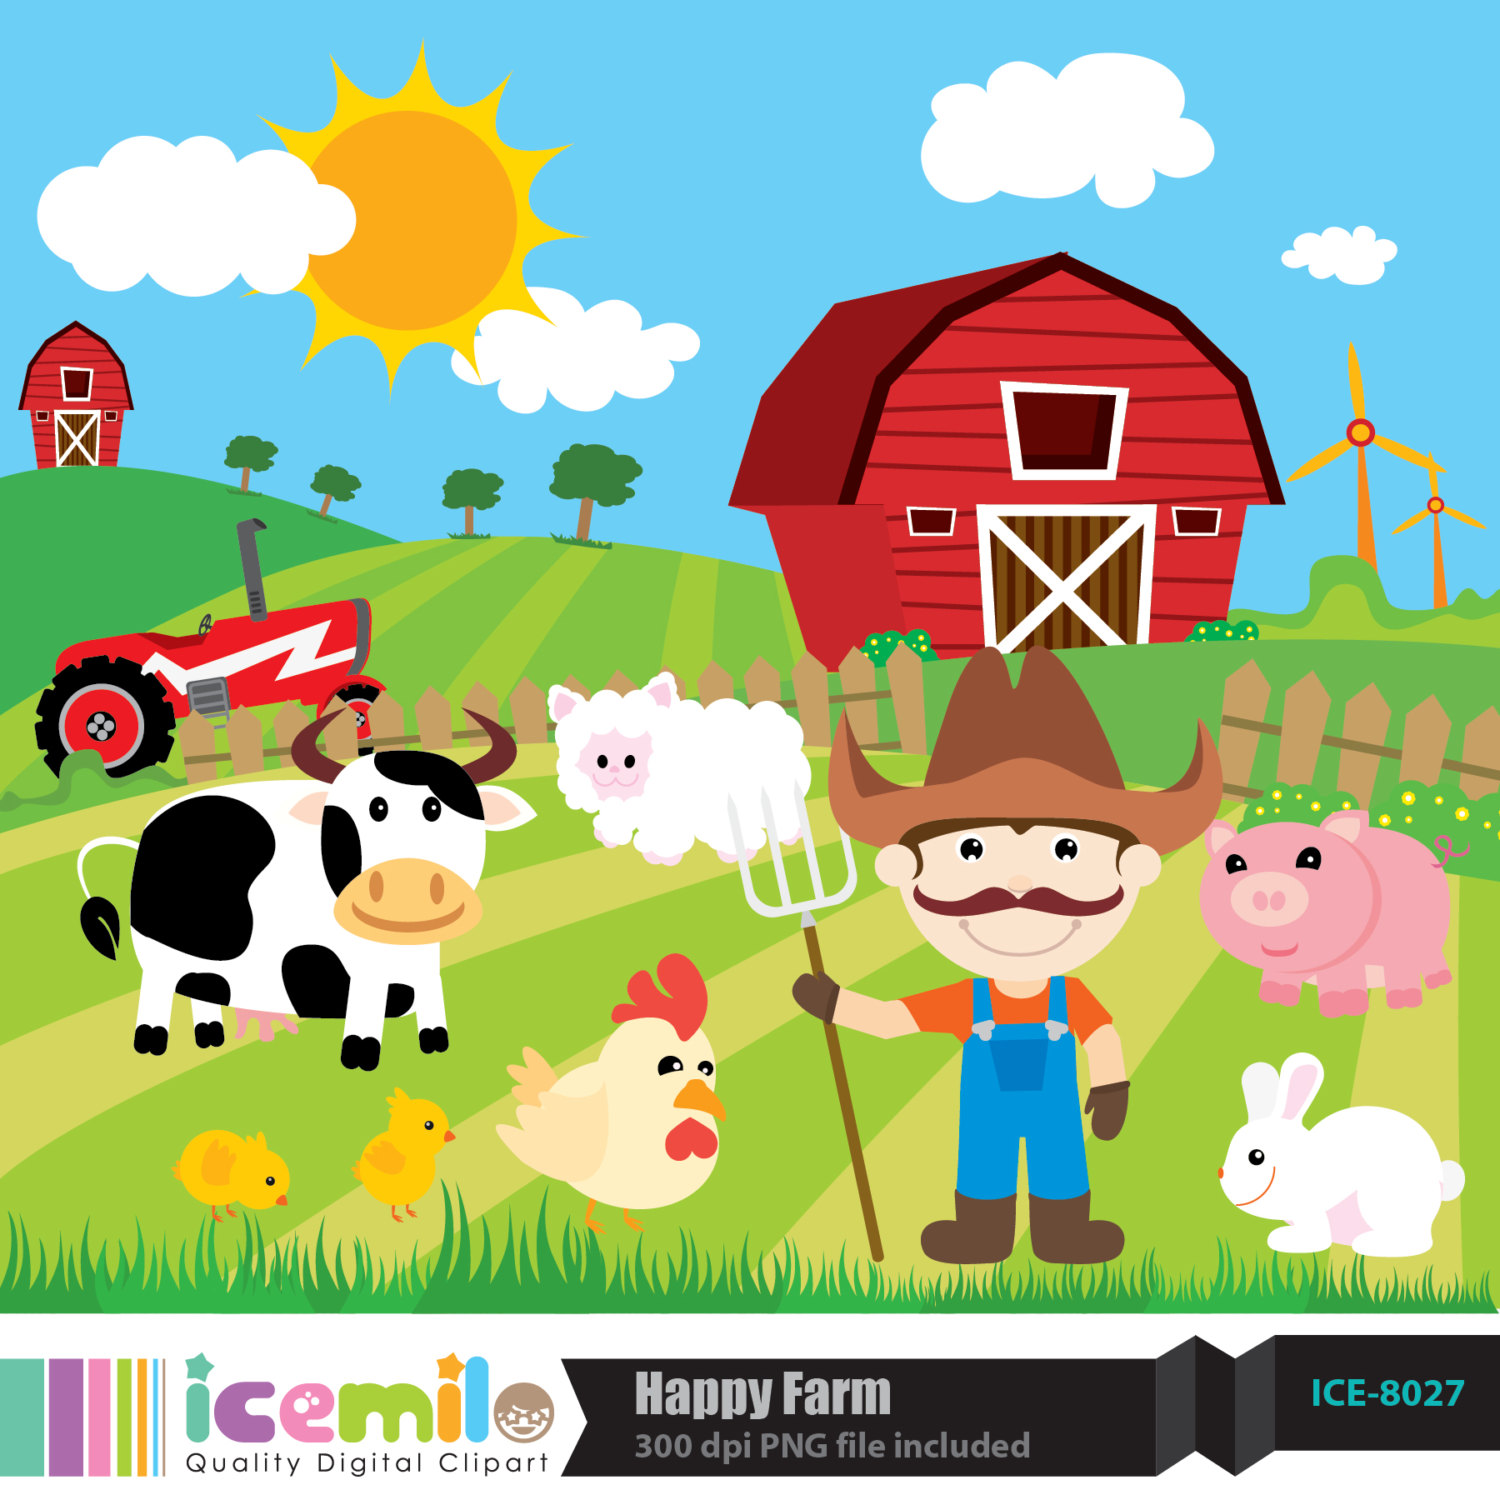 hight resolution of related clipart